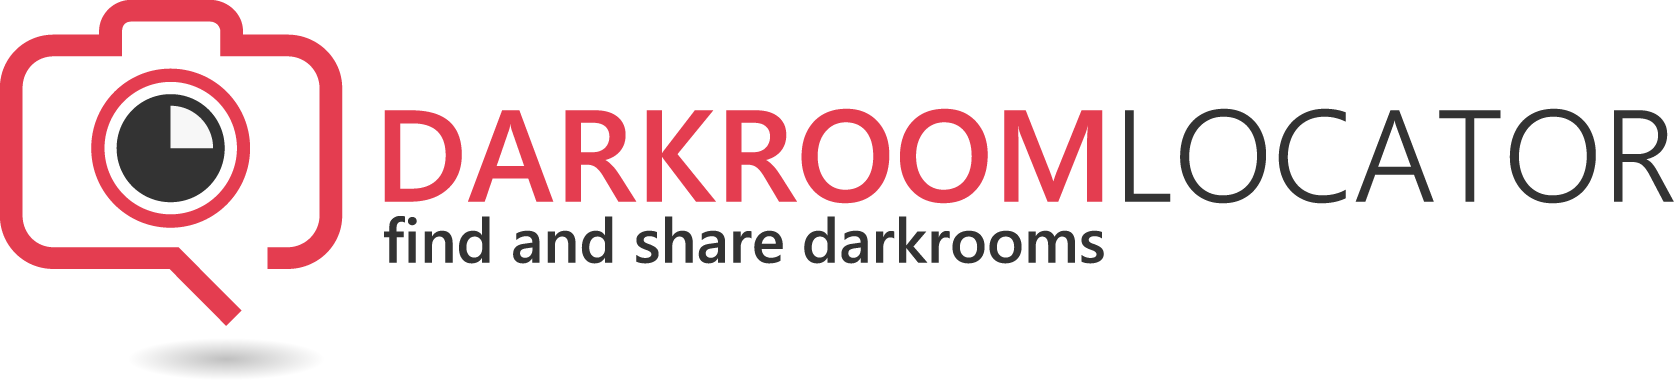 drl white bkg - darkroom locator